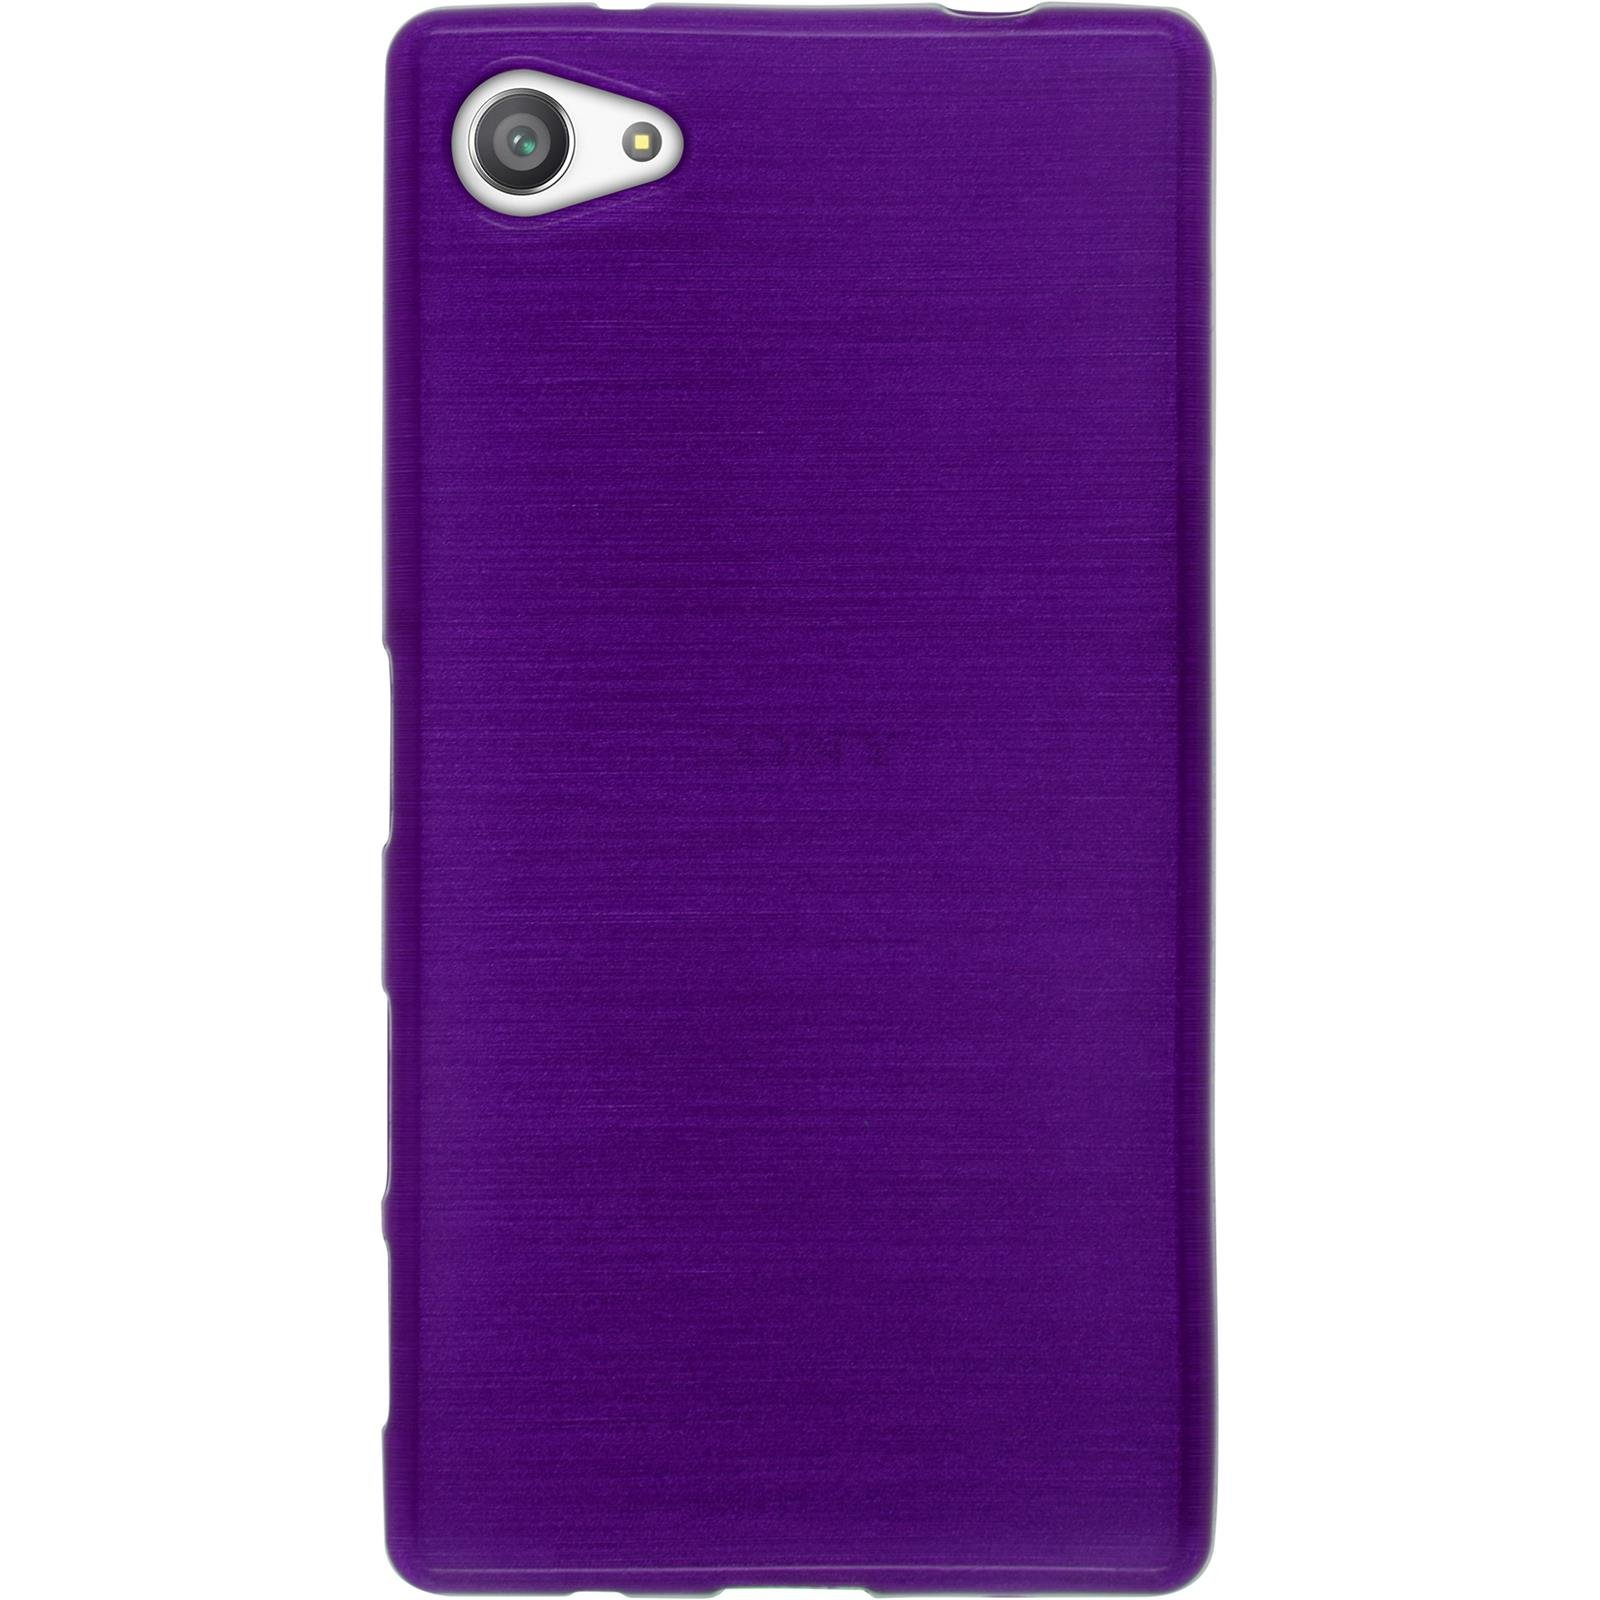 Silicone Case for Sony Xperia Z5 Compact - brushed purple - Cover PhoneNatic + protective foils by PhoneNatic (Image #3)